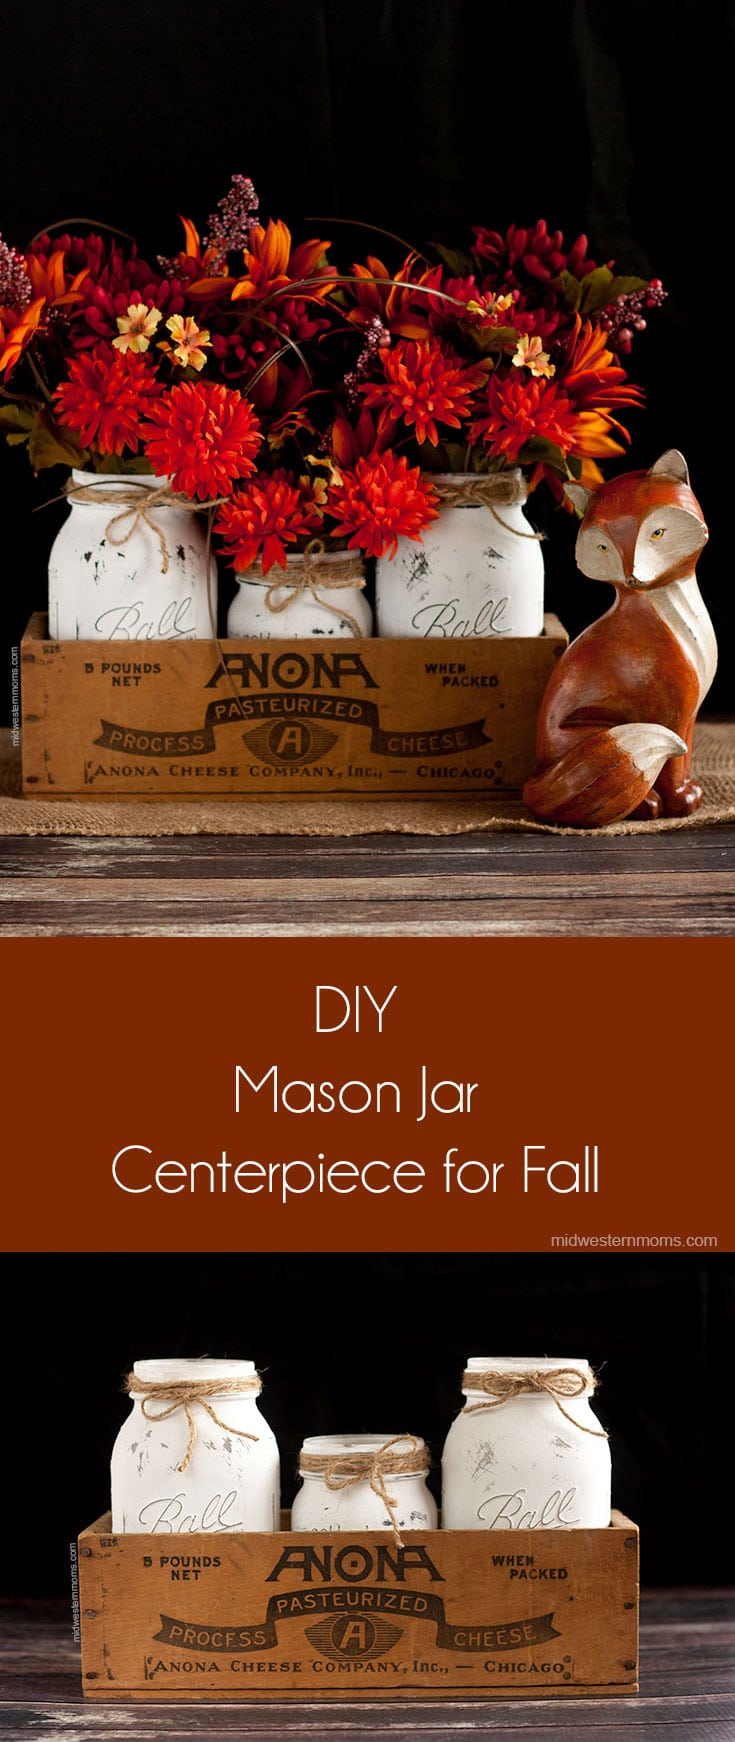 The perfect fall centerpiece using mason jars! Simple to make and it looks gorgeous! Easy to customize to each season or holiday.